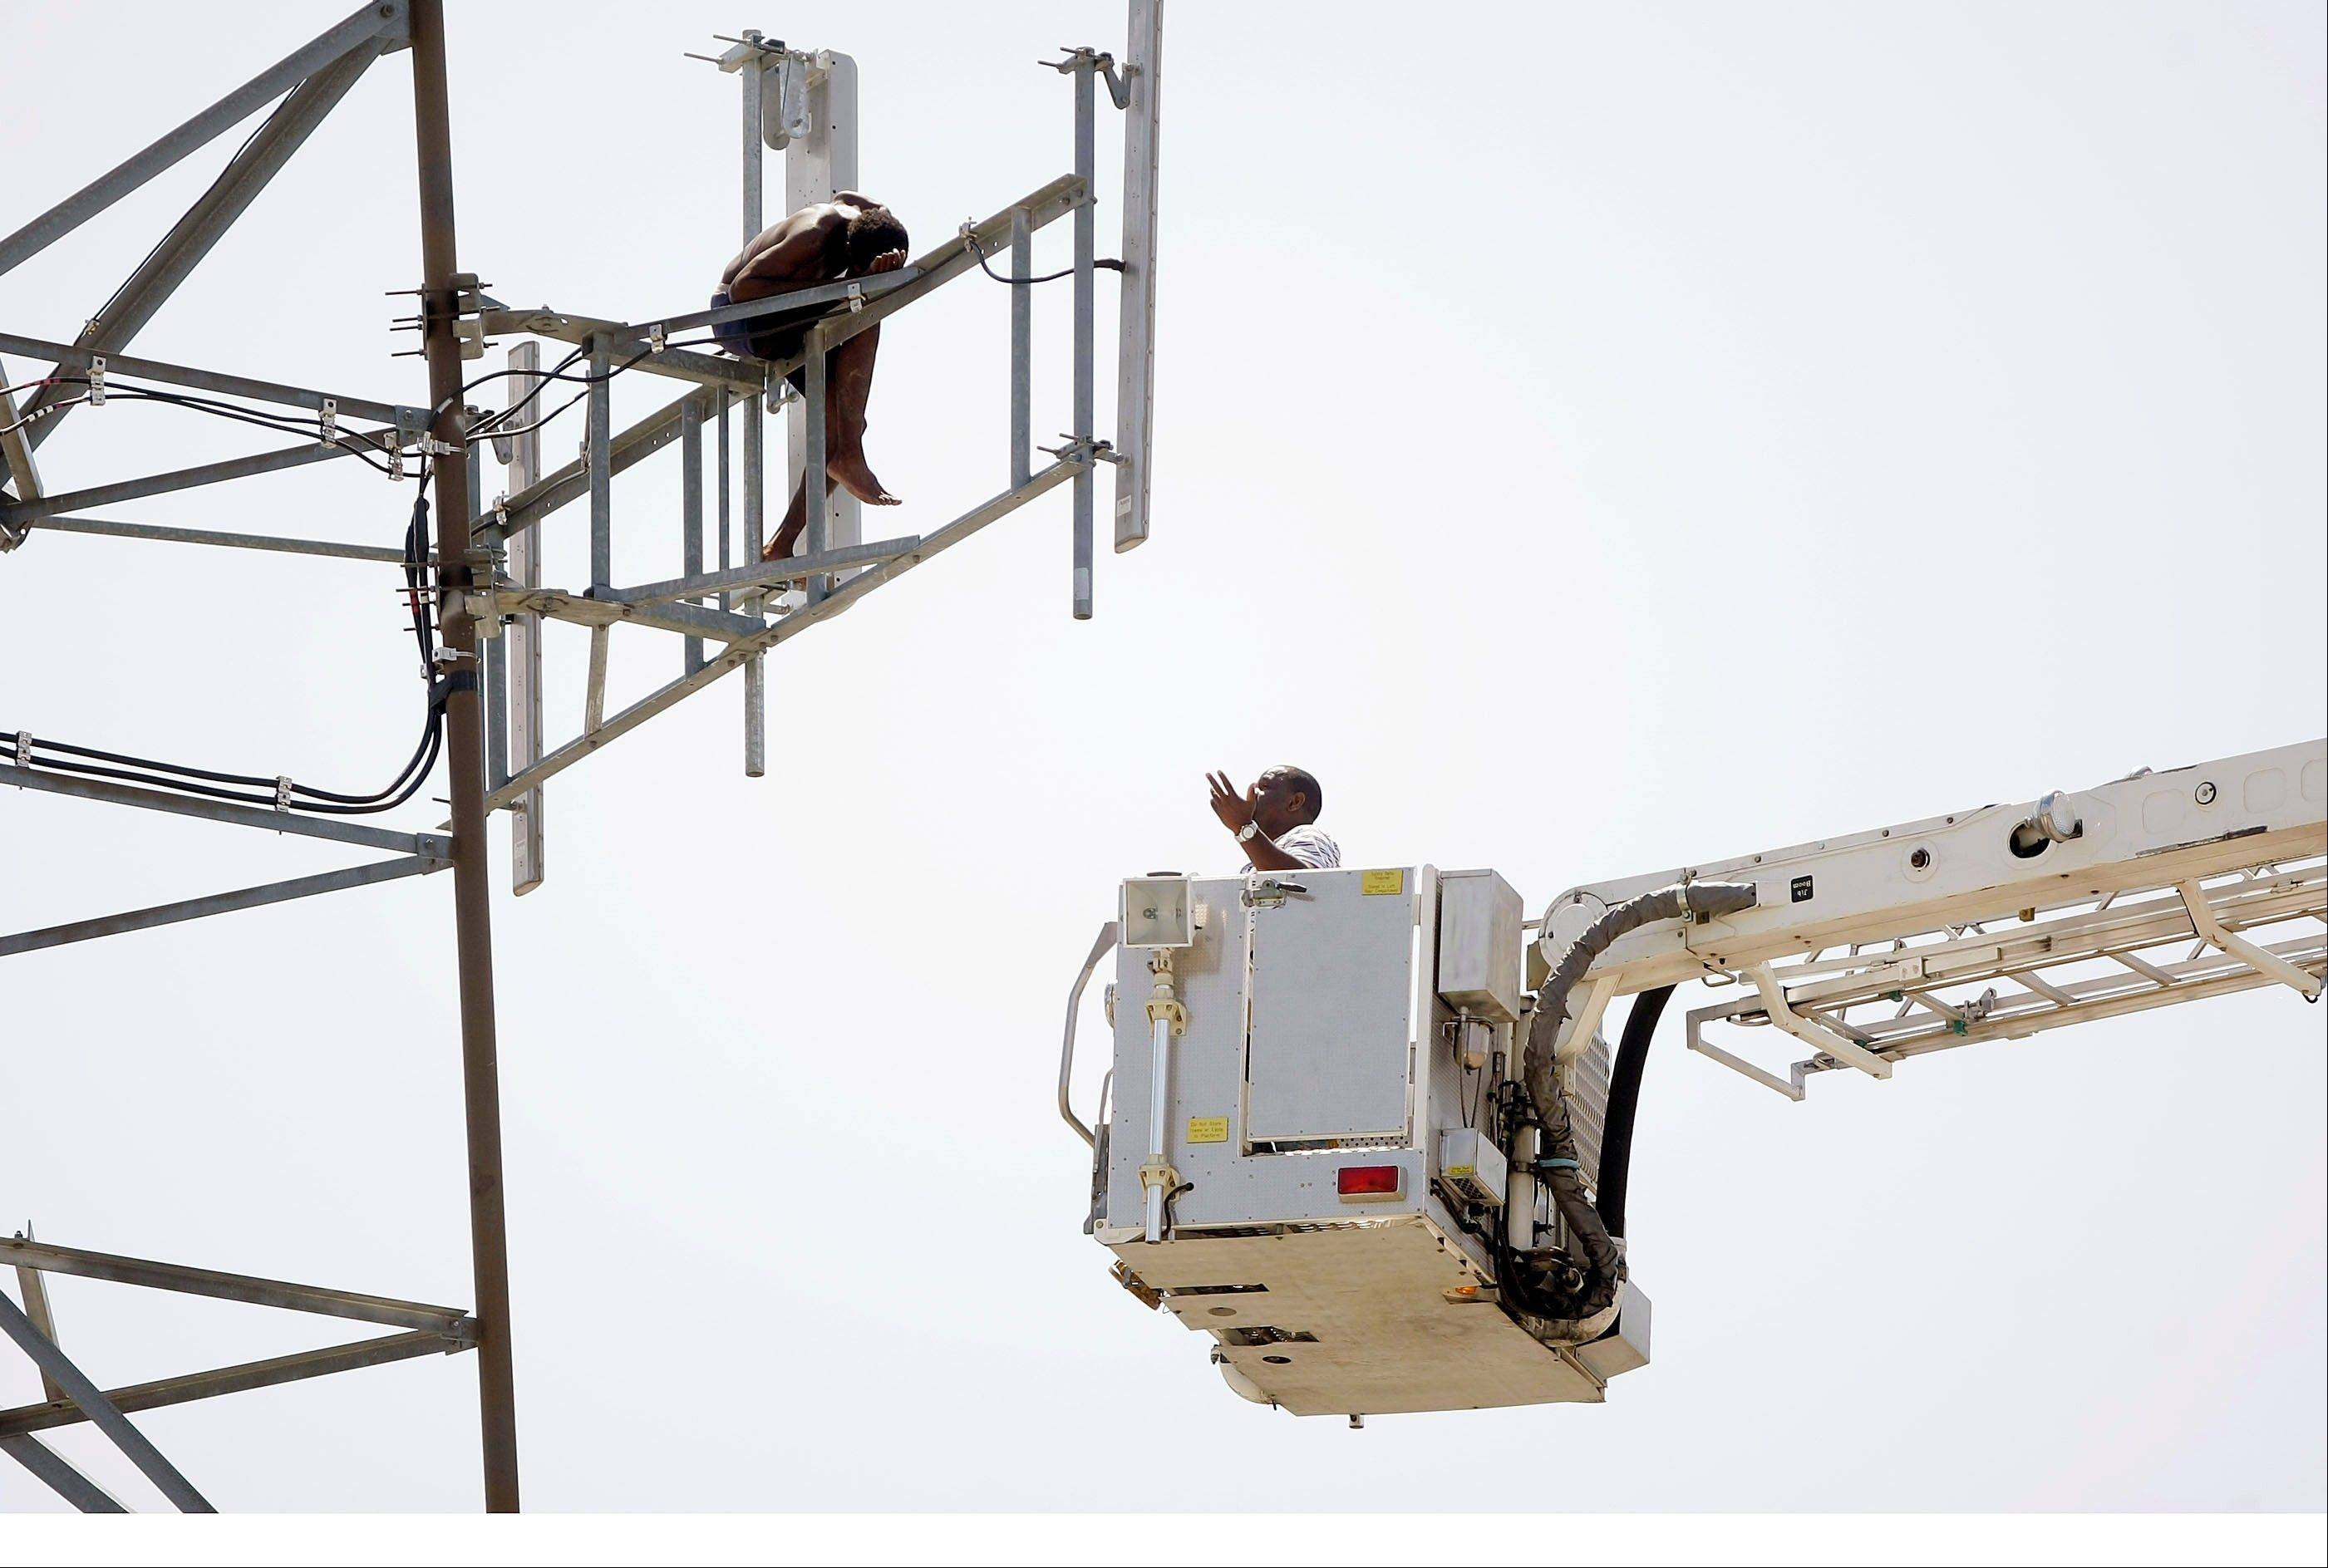 Negotiations continue Tuesday with a man on a tower in Tulsa, Okla.